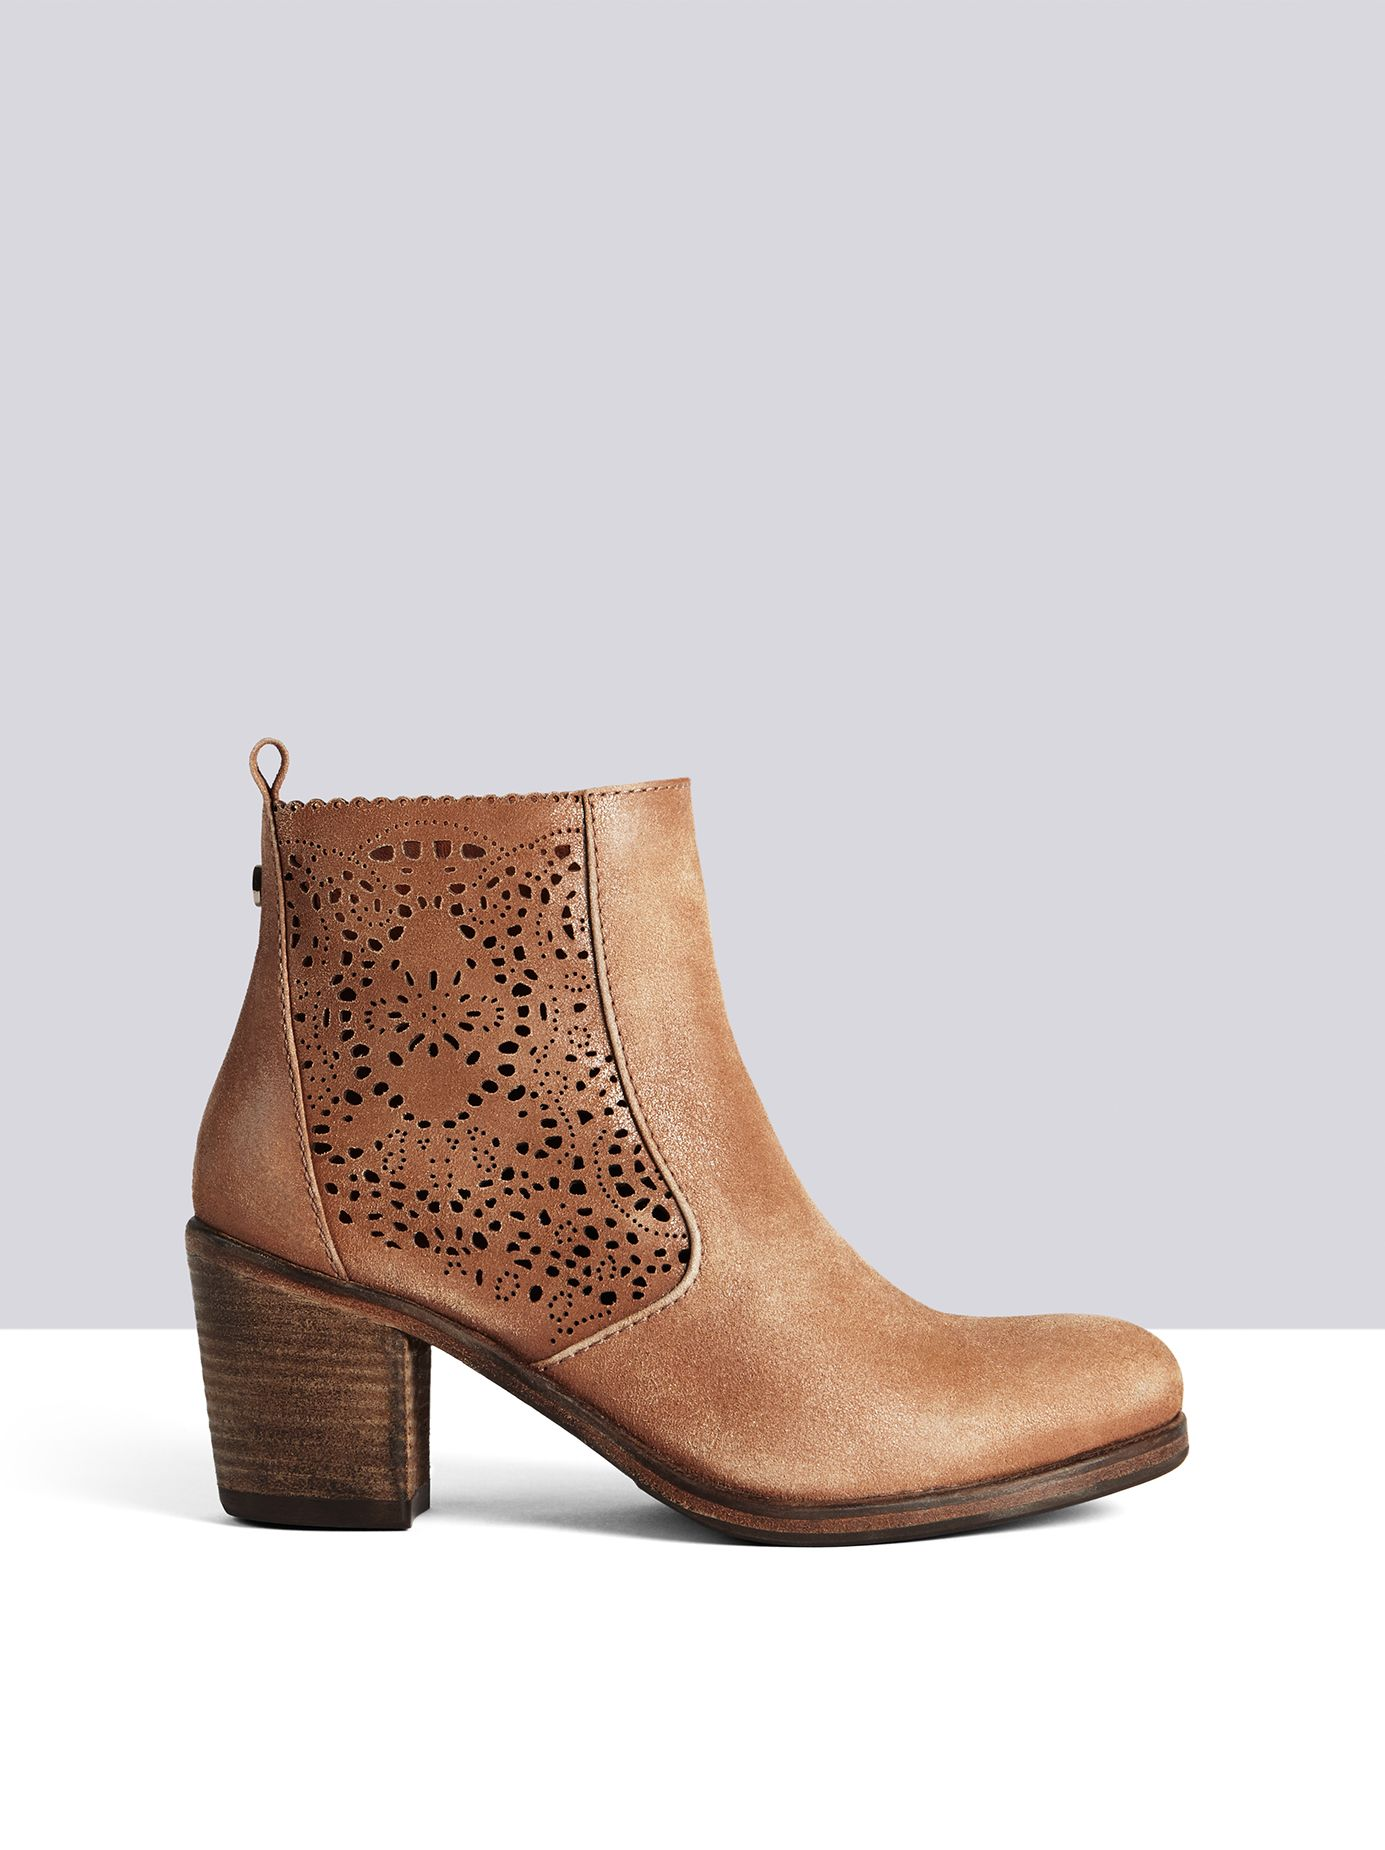 Tan leather ankle boots with stunning laser cut leather detailing. Style: Swift - Ted&Muffy, fairytale fitters.